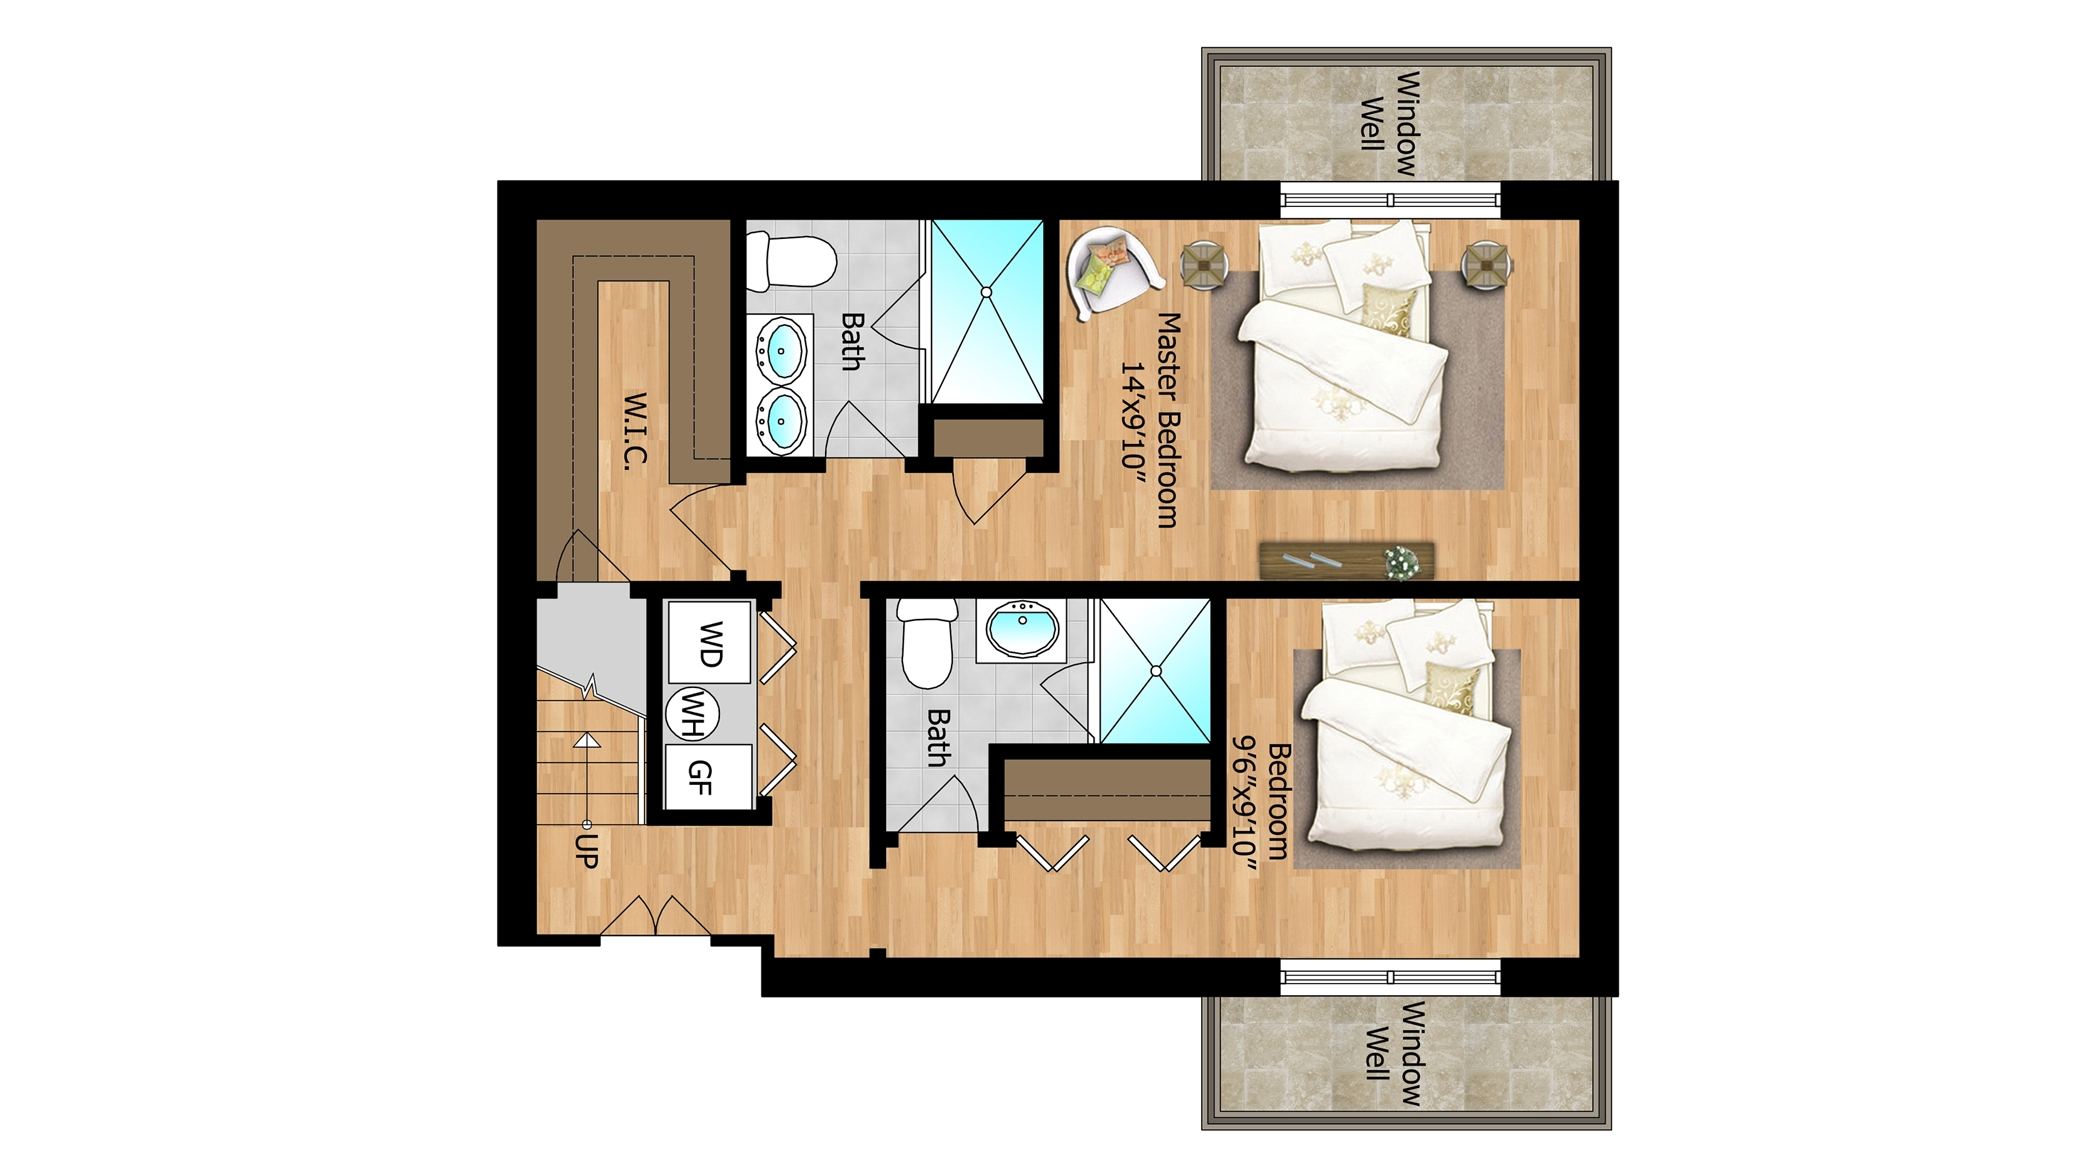 Lower Level - Unit 1 Bedrooms